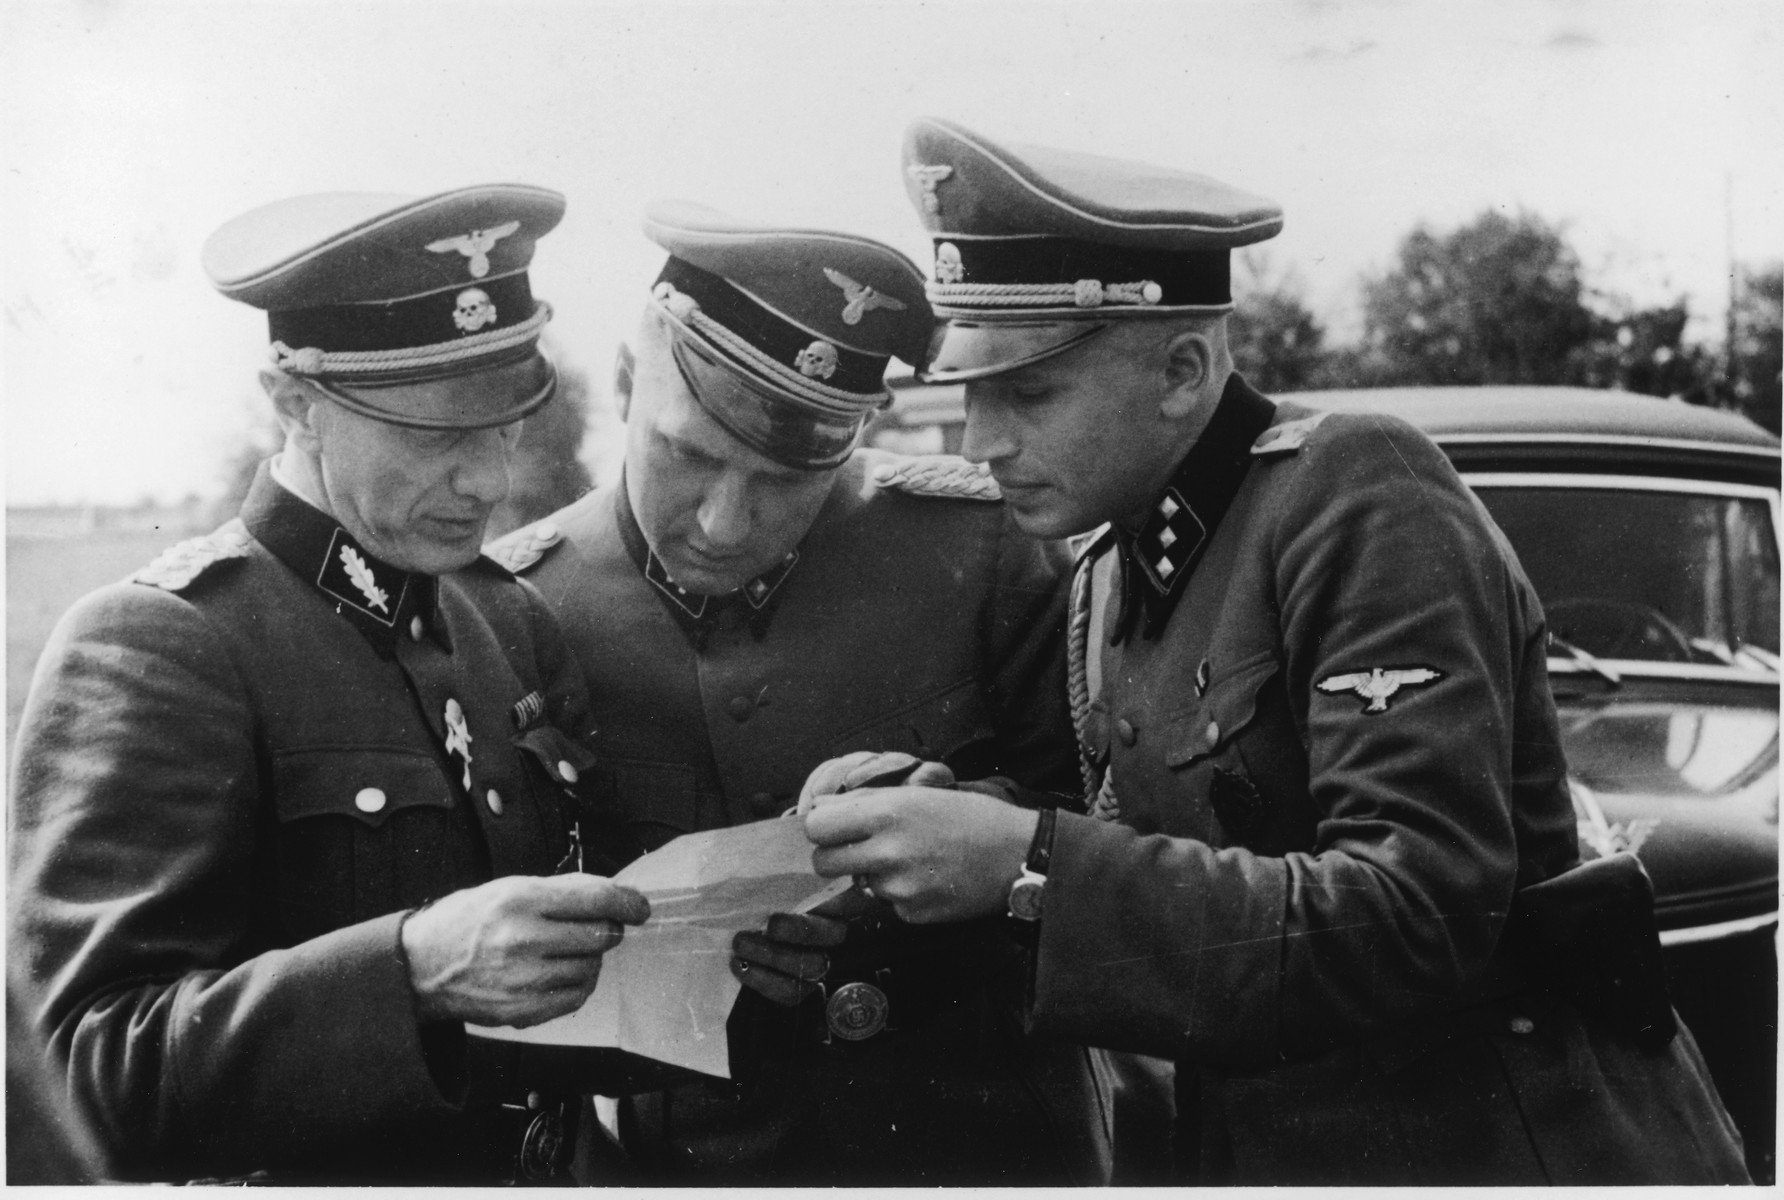 Three SS officers study a document during the dedication of the new SS hospital.  Pictured left to right are Dr. Enno Lolling, Commandant Richard Baer and Adjutant Karl Hoecker.